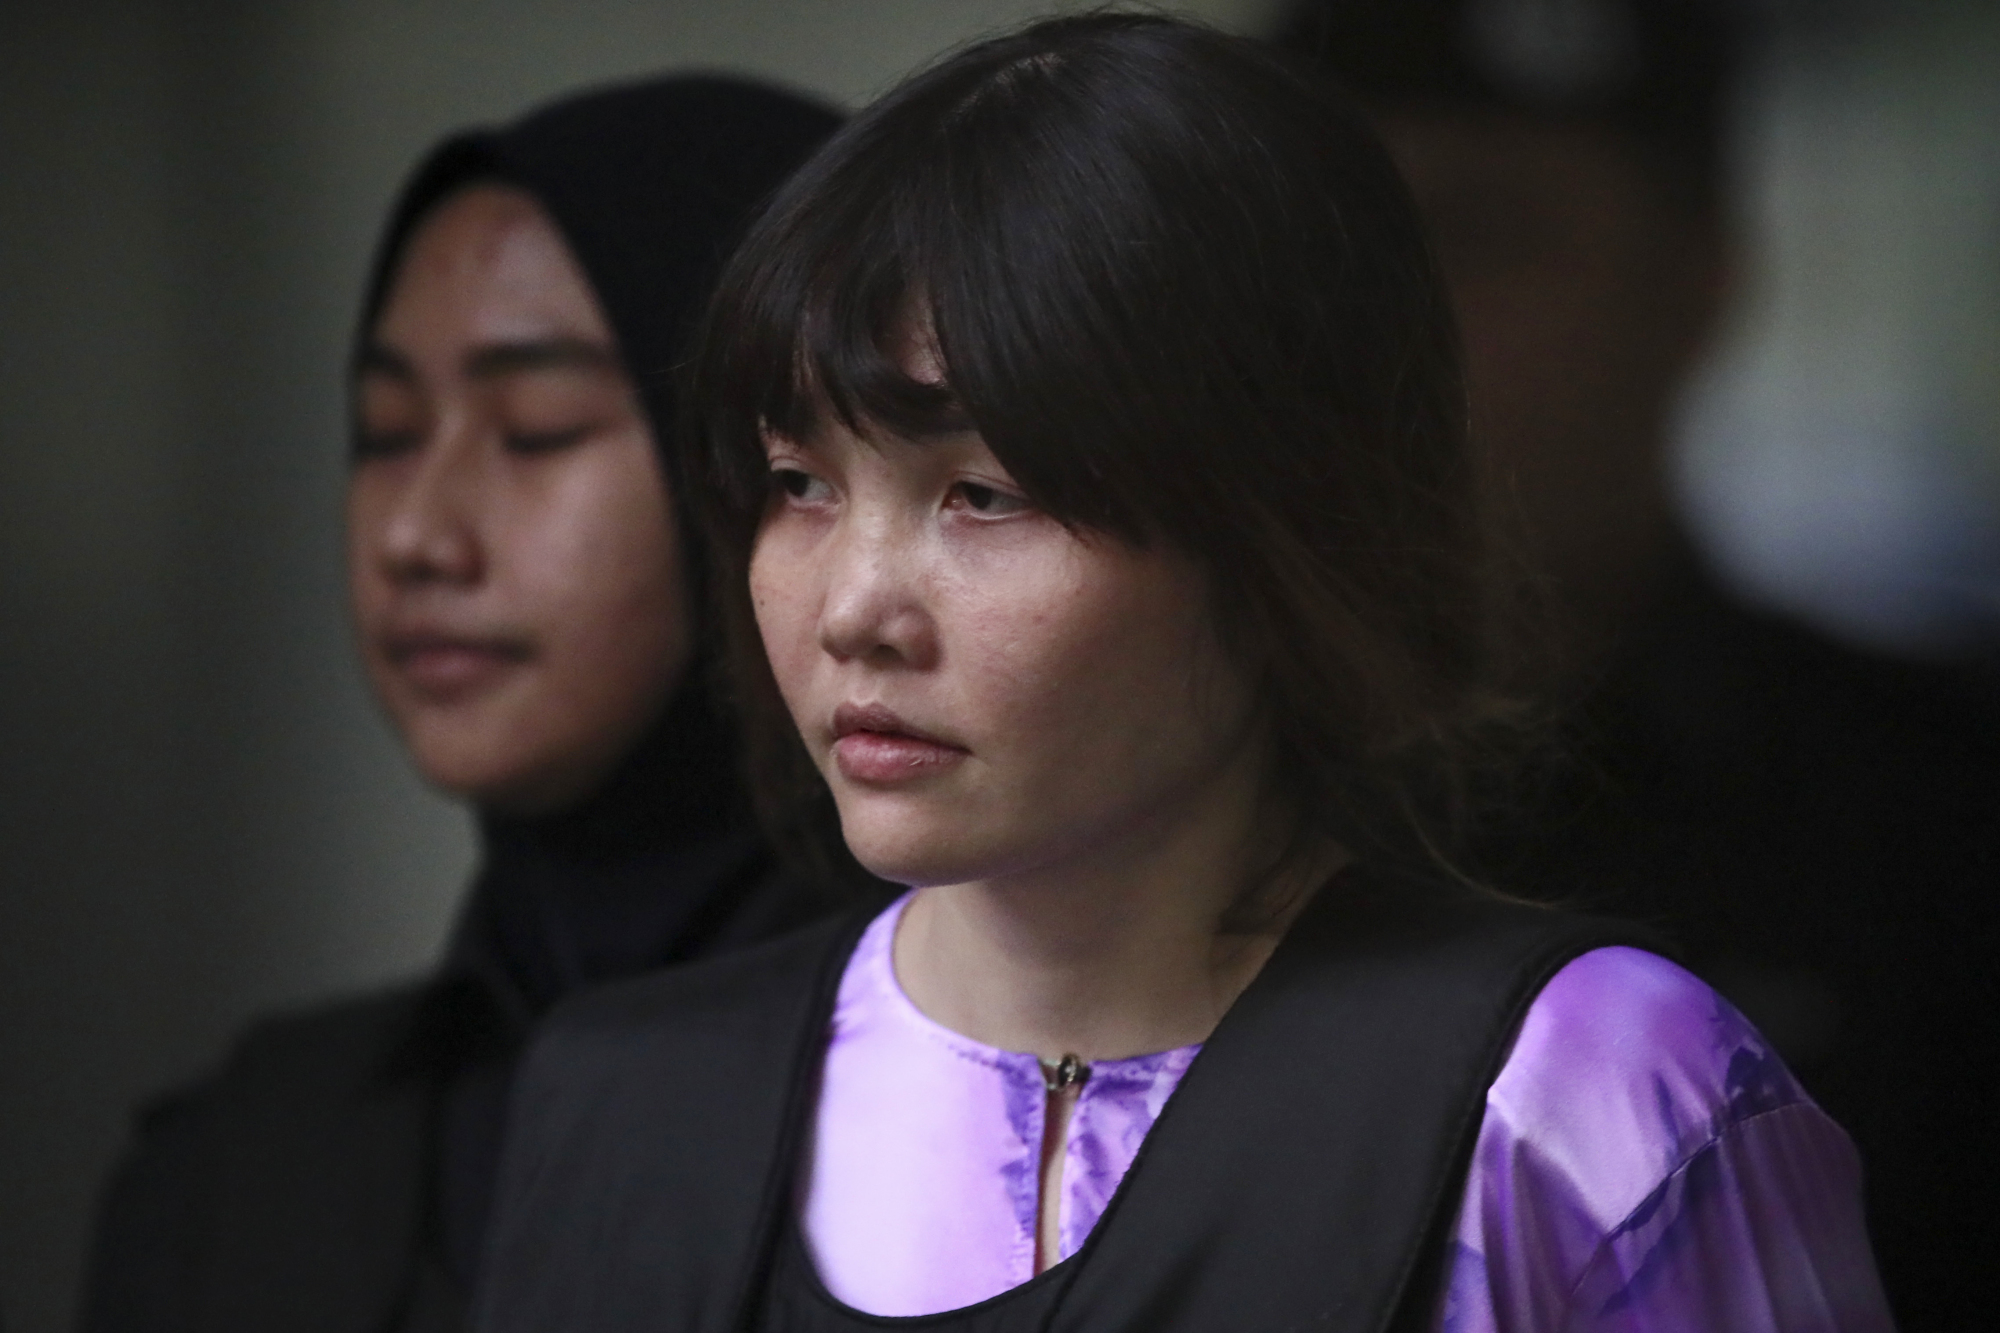 Vietnamese Doan Thi Huong is escorted by police as she leaves after her trial session at the Shah Alam courthouse in Shah Alam, outside Kuala Lumpur Tuesday. | AP